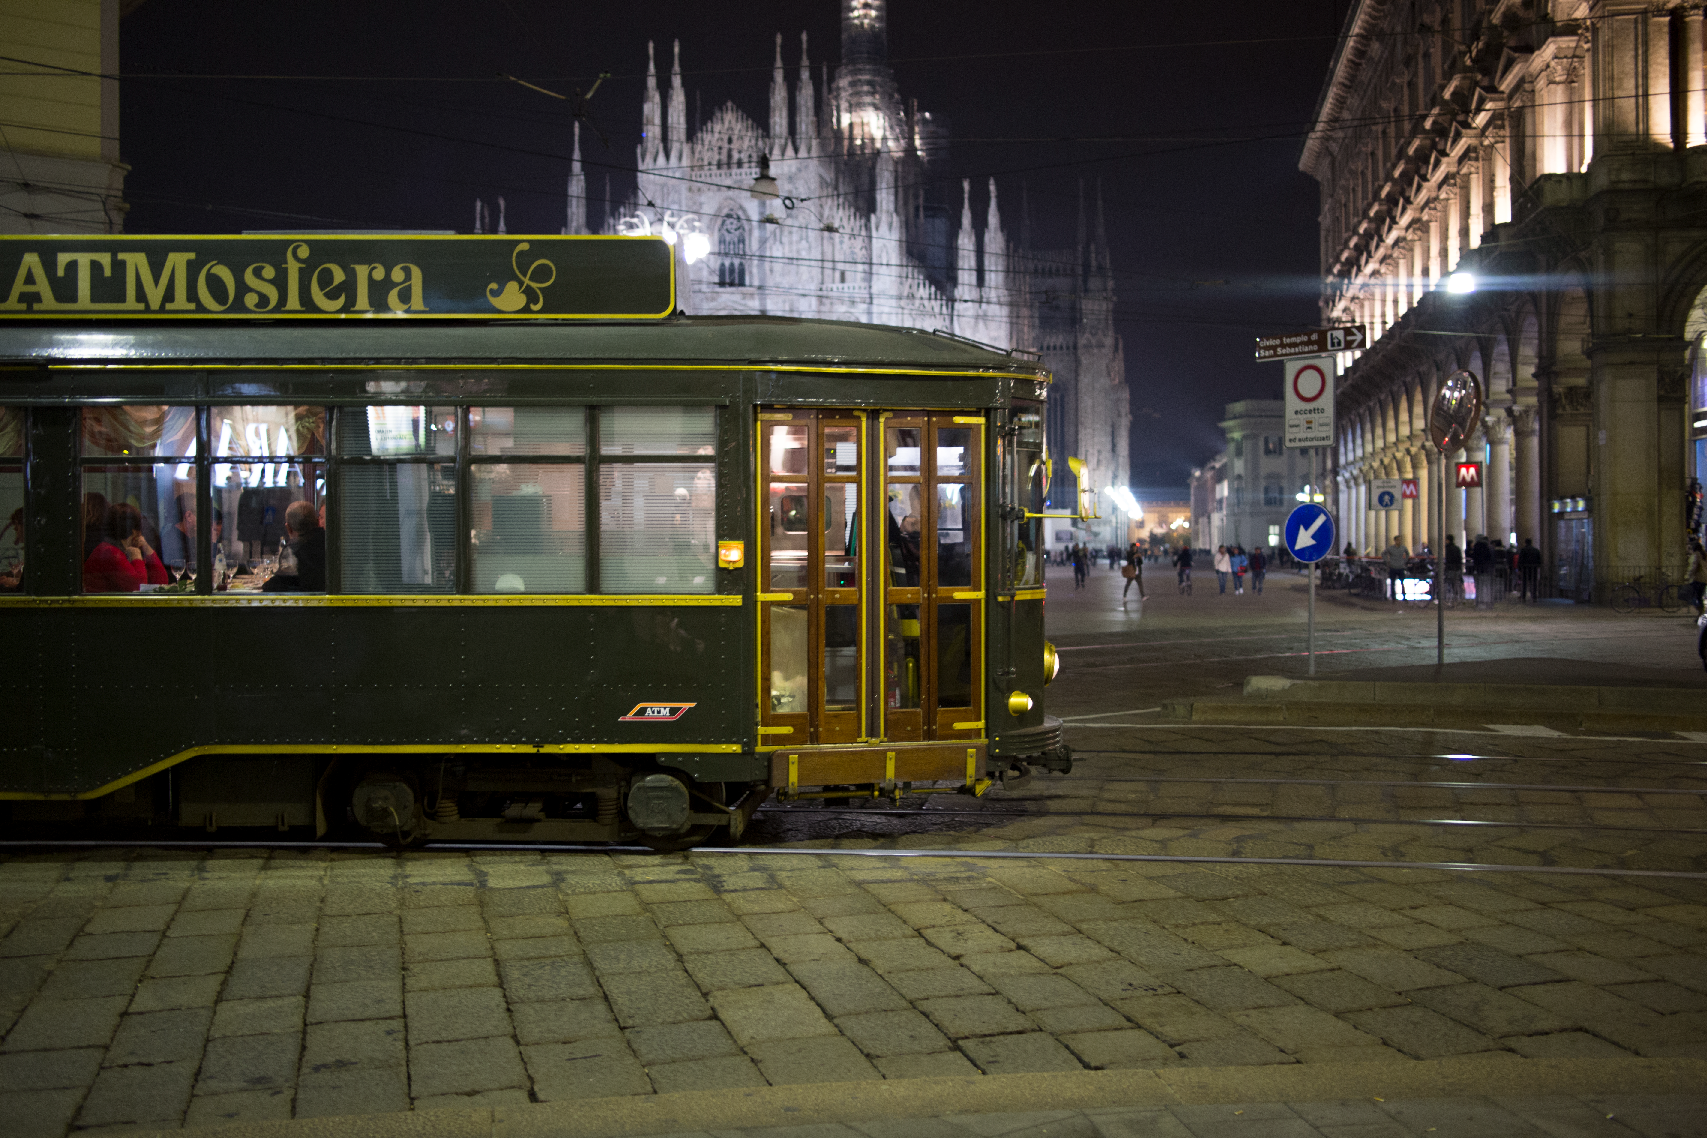 Italy's first itinerant restaurant on a renovated tram, known as the ATMosfera.